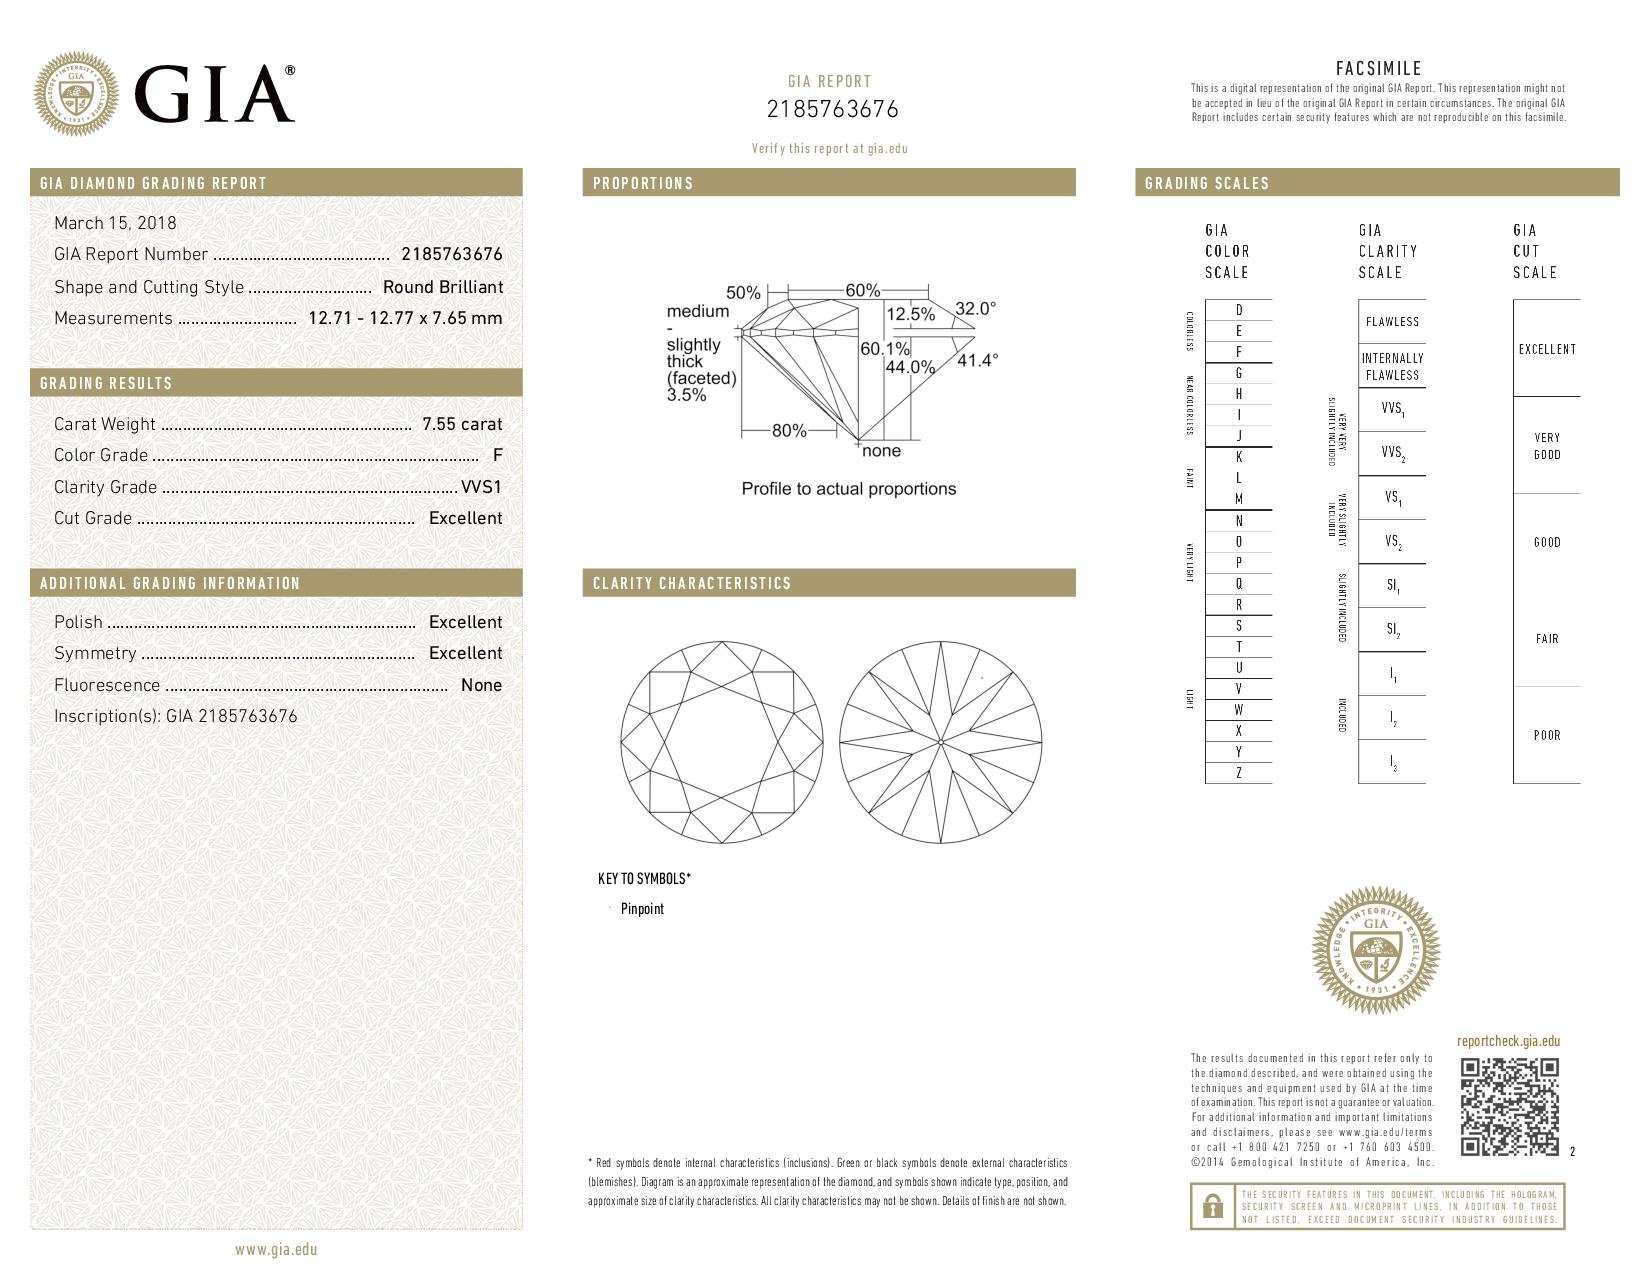 This is a 7.55 carat round shape, F color, VVS1 clarity natural diamond accompanied by a GIA grading report.